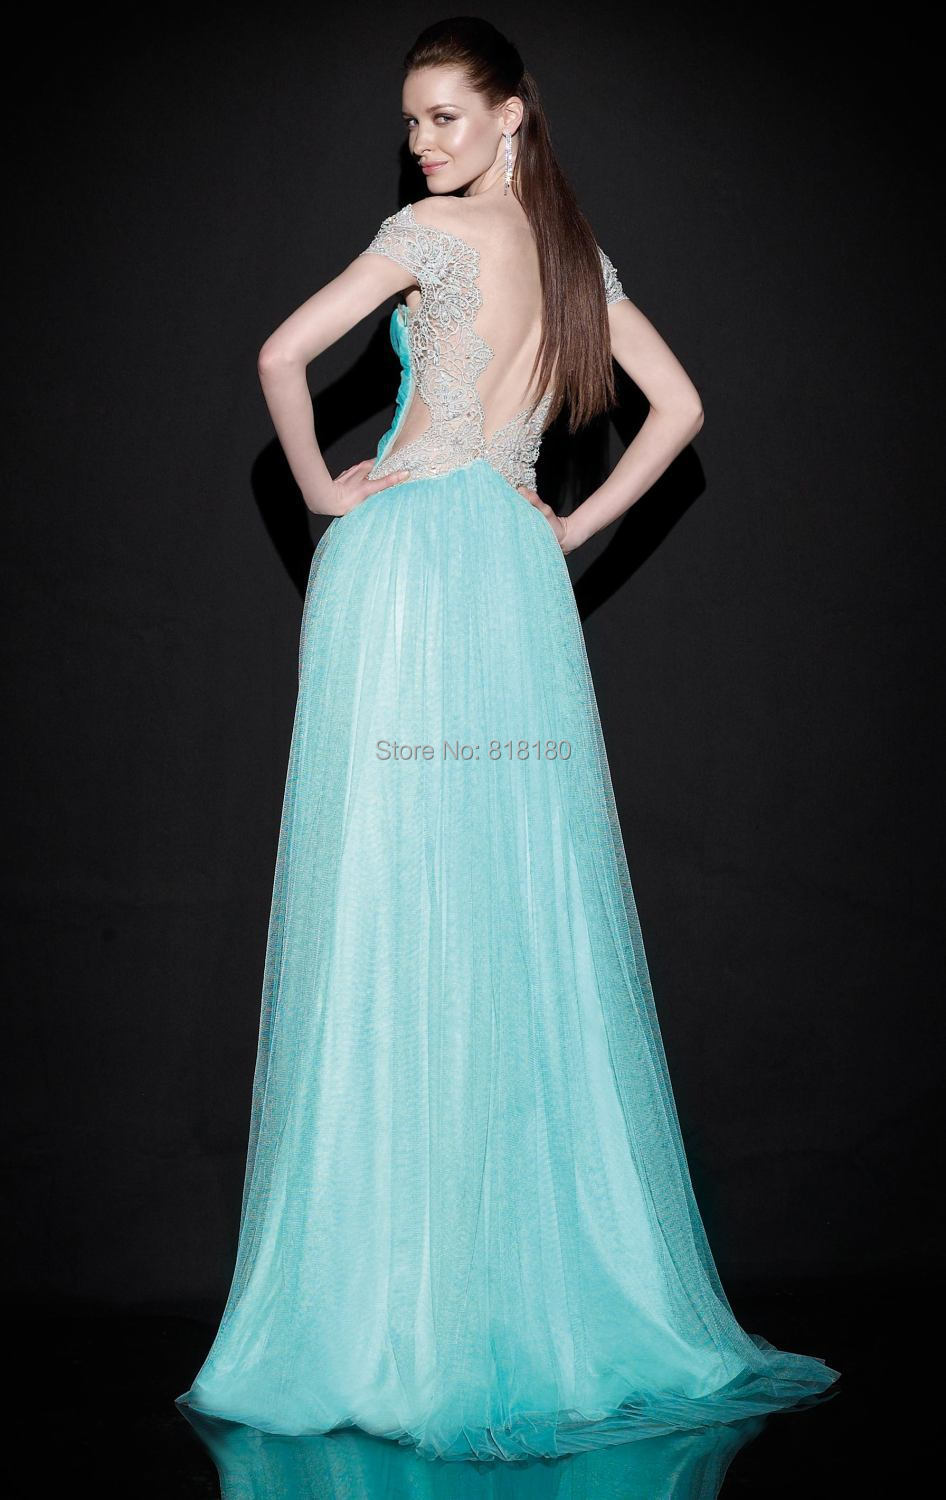 Outstanding Dresses For Engagement Party Frieze - All Wedding ...